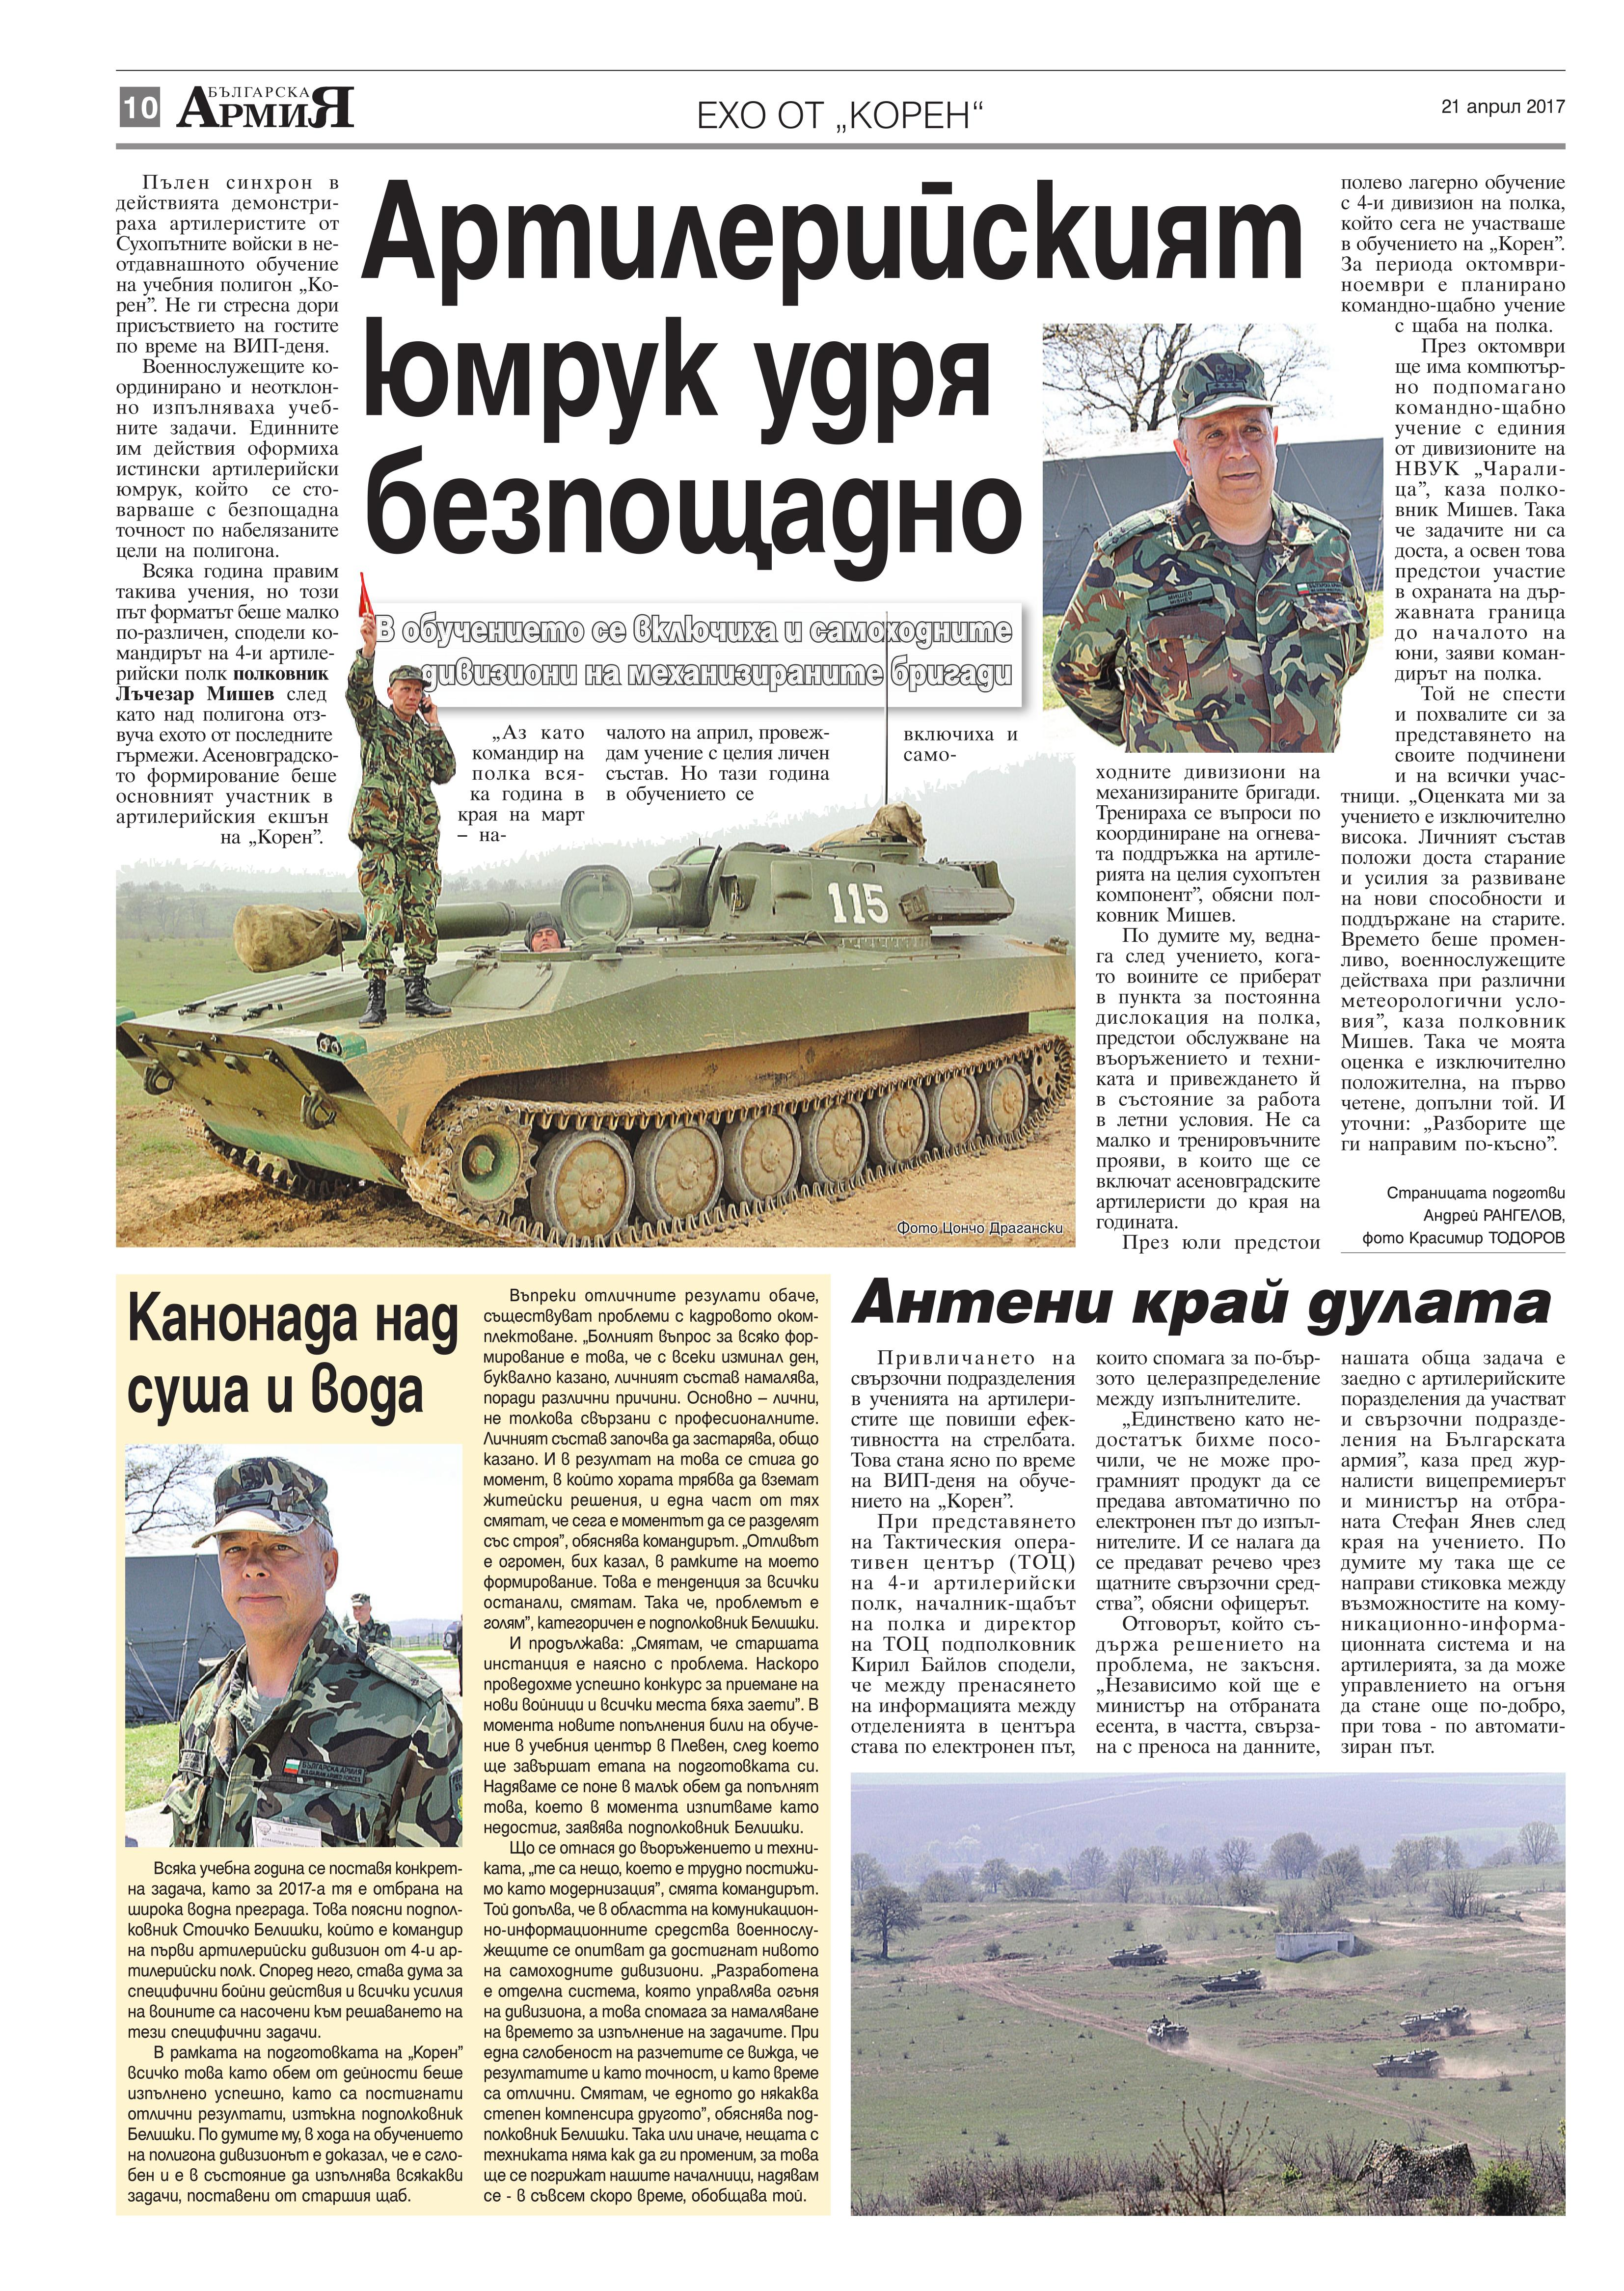 https://www.armymedia.bg/wp-content/uploads/2015/06/10.page1_-19.jpg